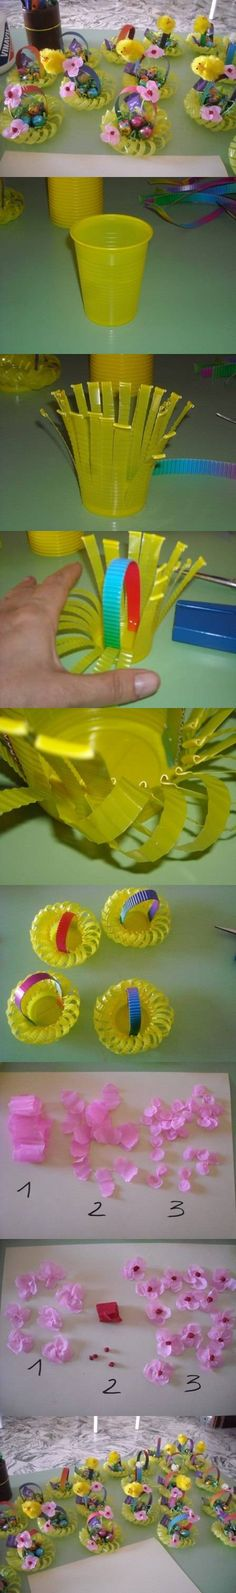 DIY Plastic Cup Flower Basket DIY Projects | UsefulDIY.com Follow Us on Facebook ==> http://www.facebook.com/UsefulDiy